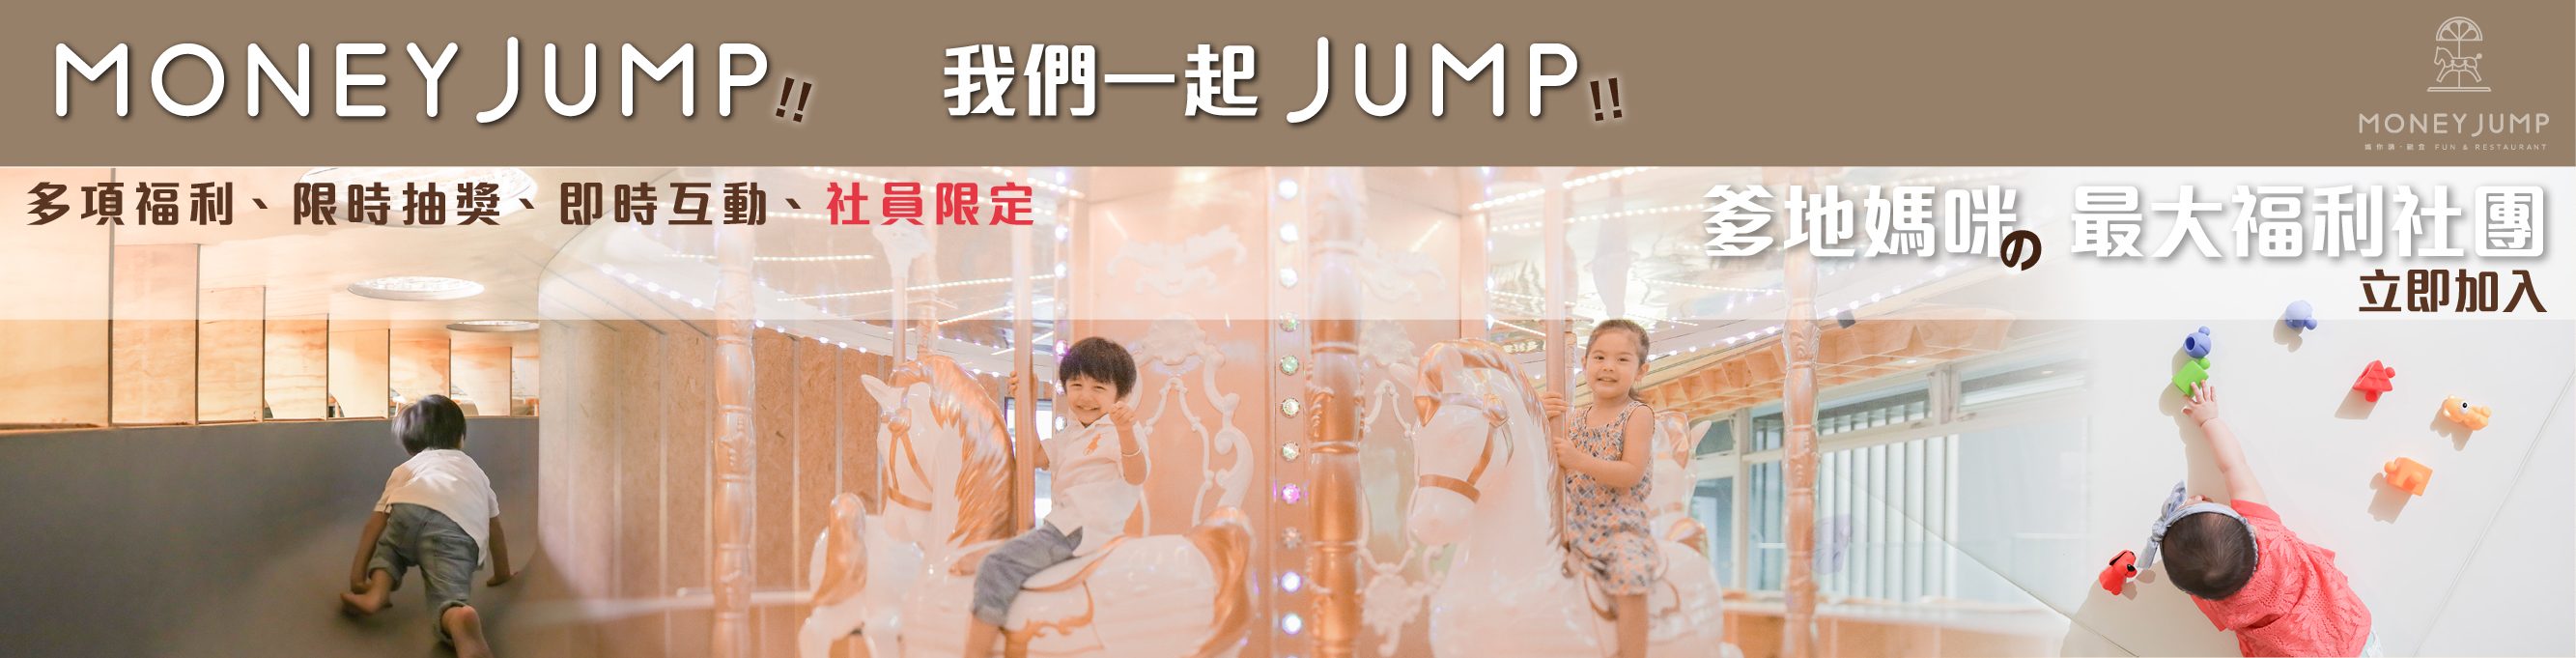 MoneyJump社團